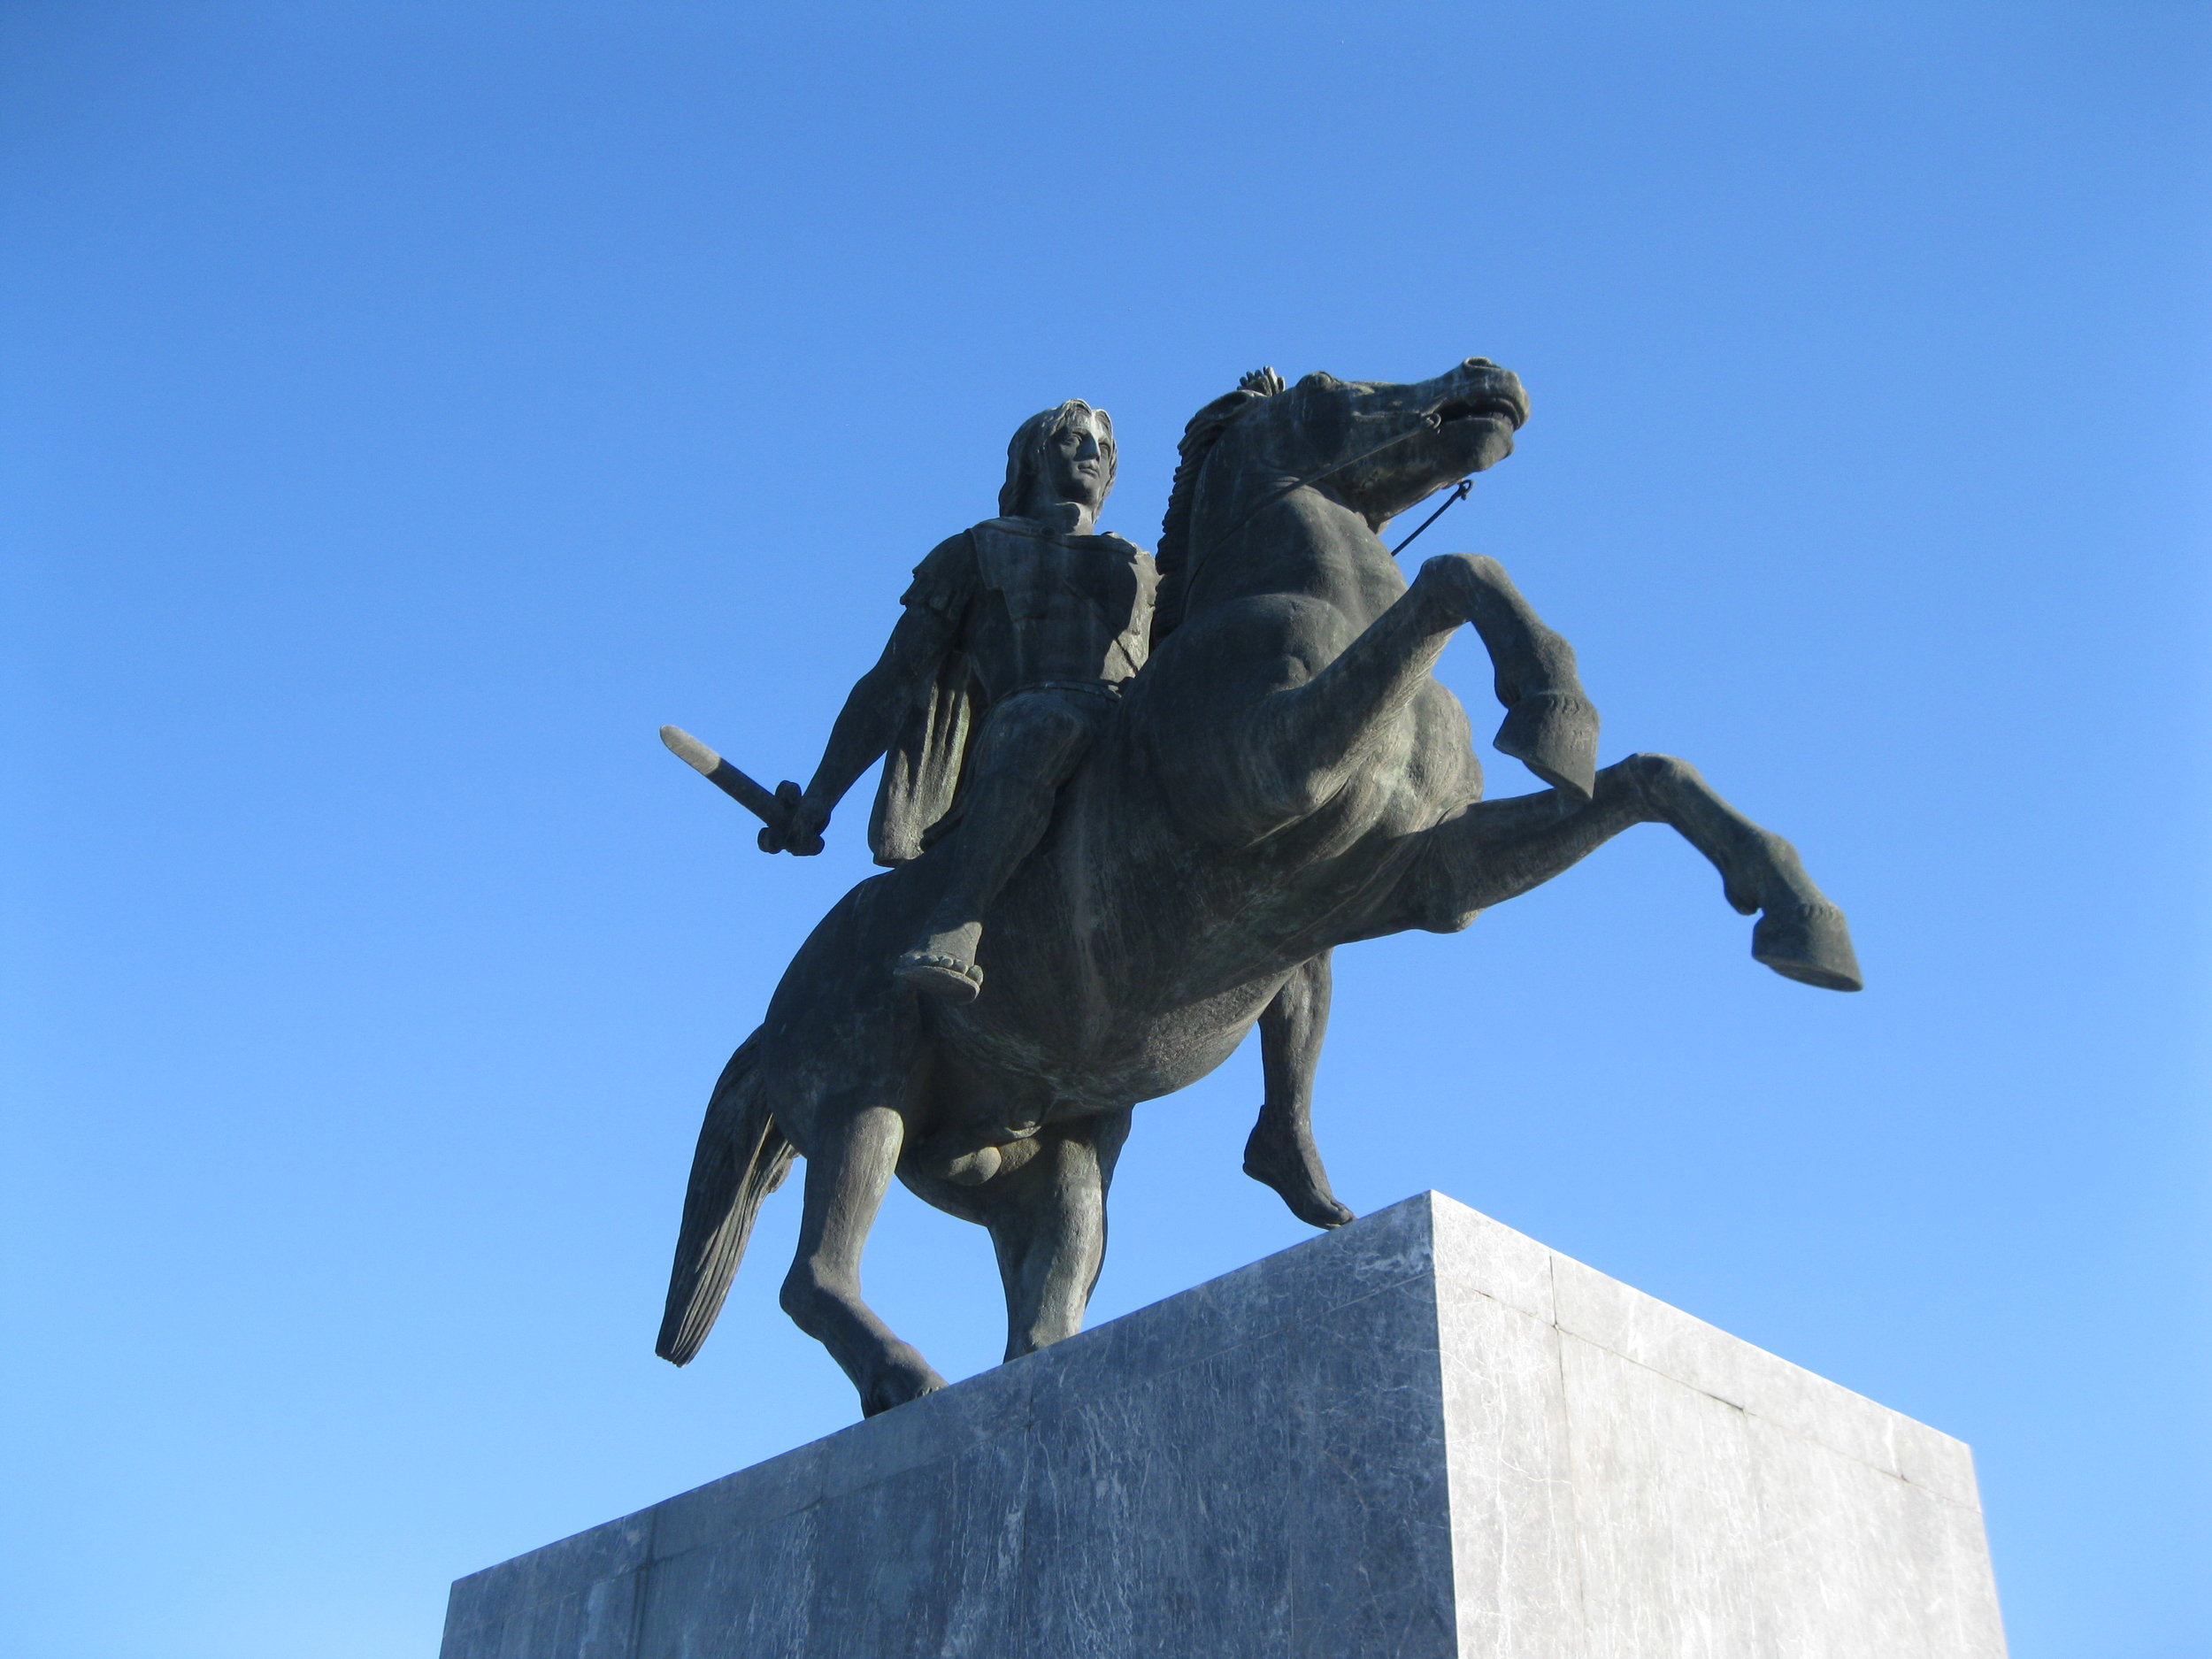 Alexander the Great aboard Bucephalus at the Alexander the Great memorial in Thessaloniki. Photograph by Georgette Gouveia.